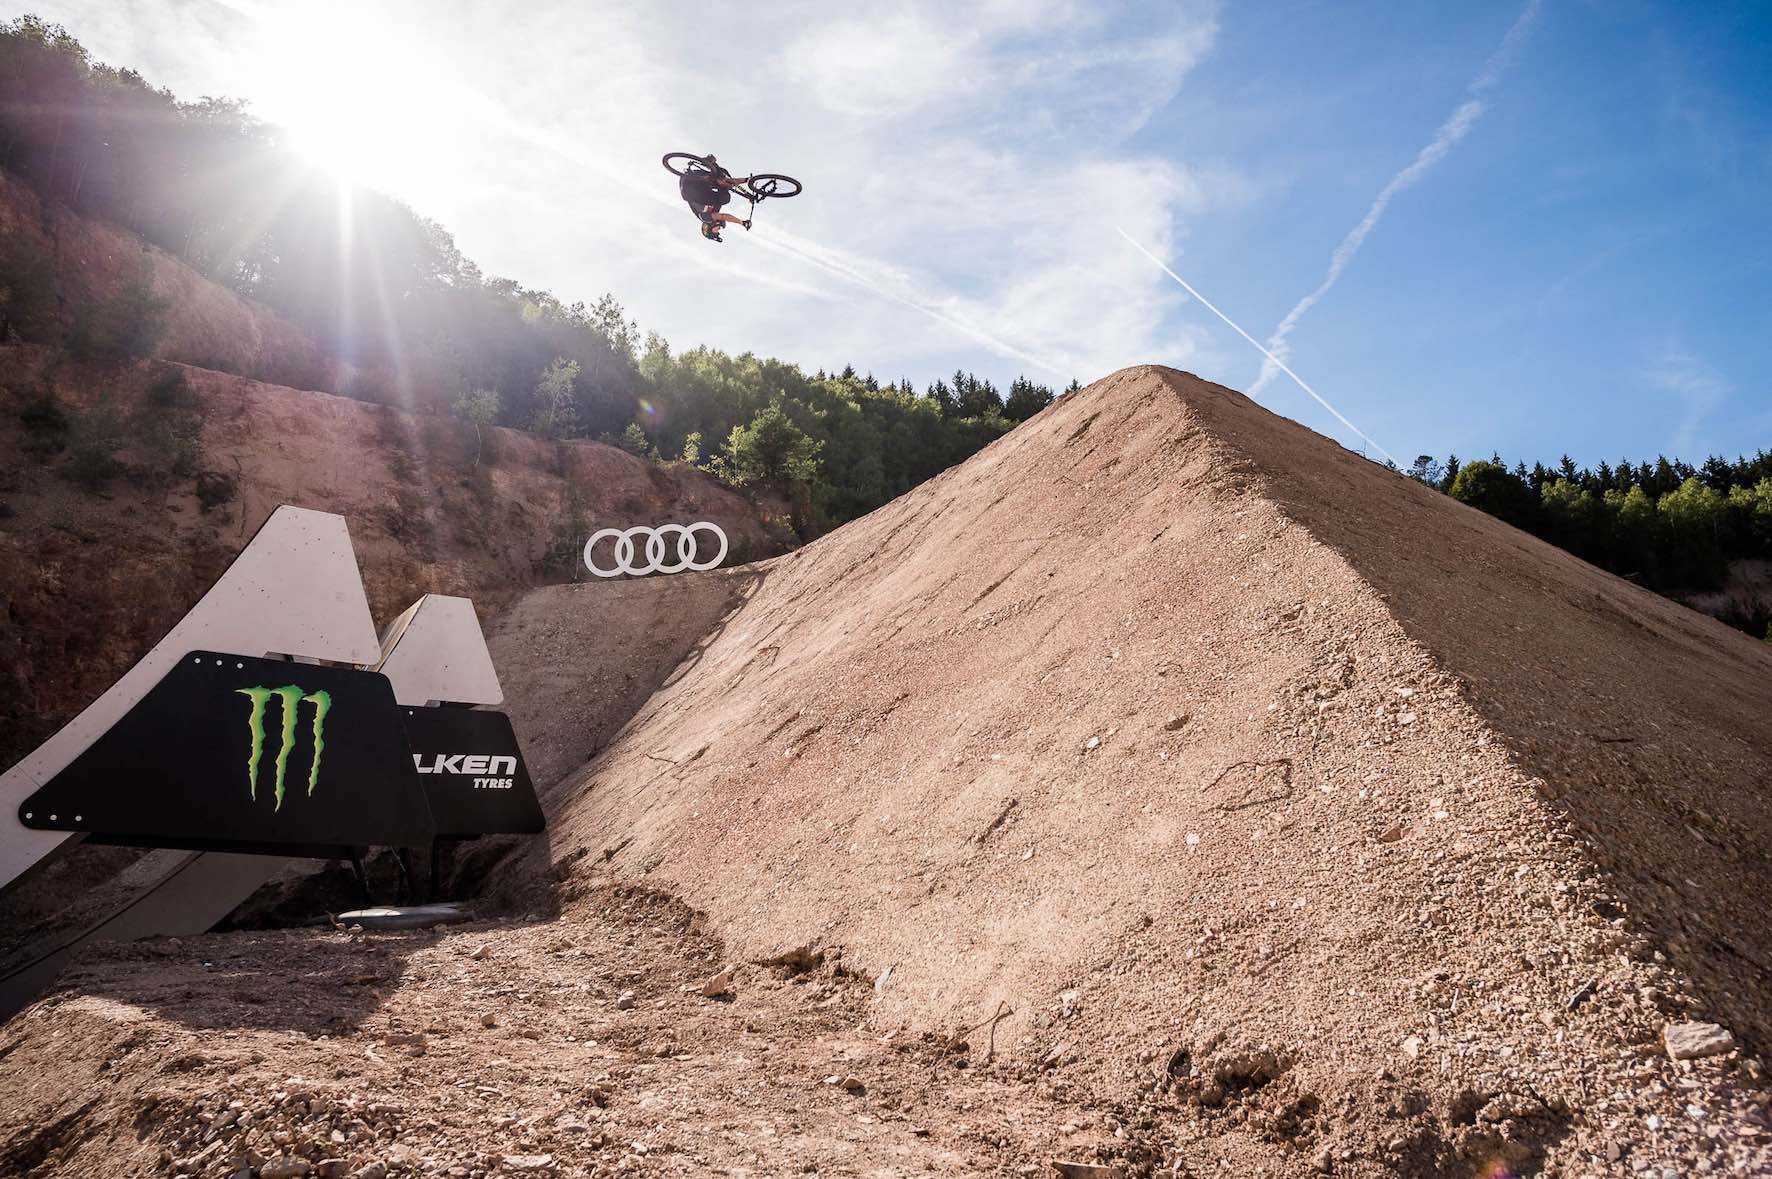 Interview with Nicholi Rogatkin on The Audi Nines 2018 Slopestyle MTB event